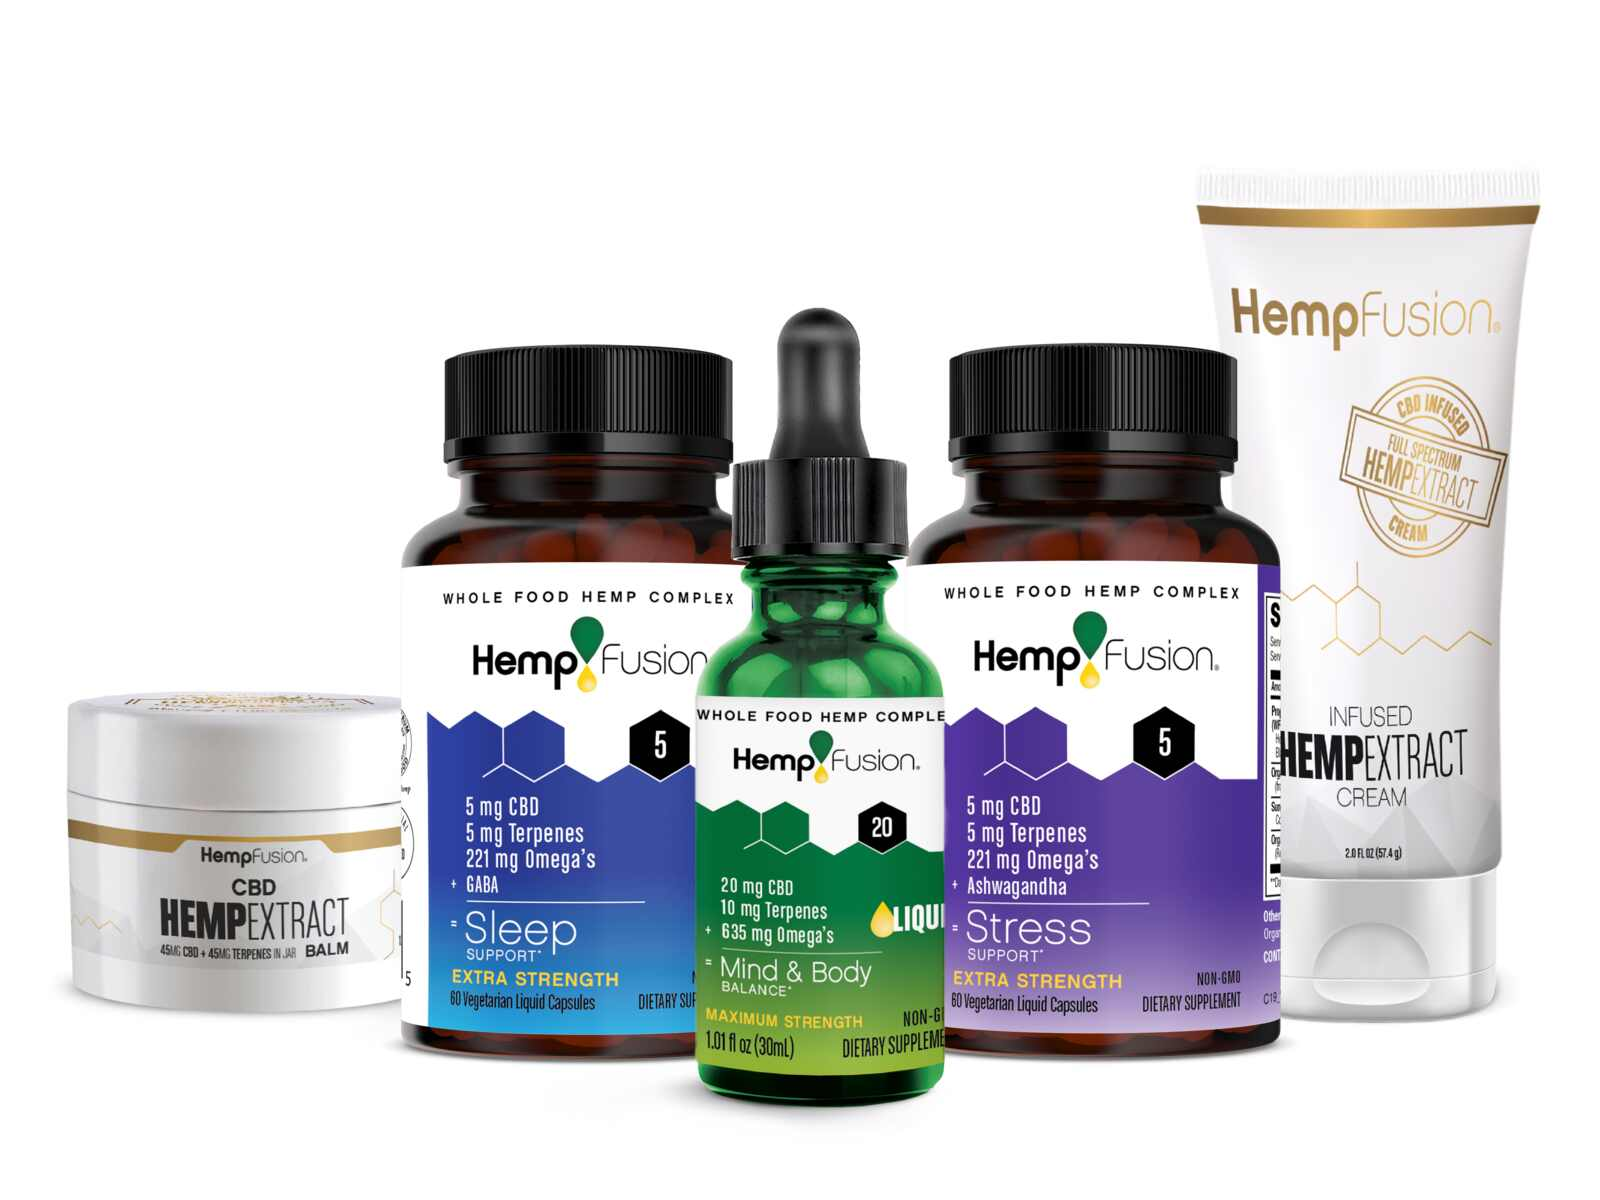 HempFusion® products